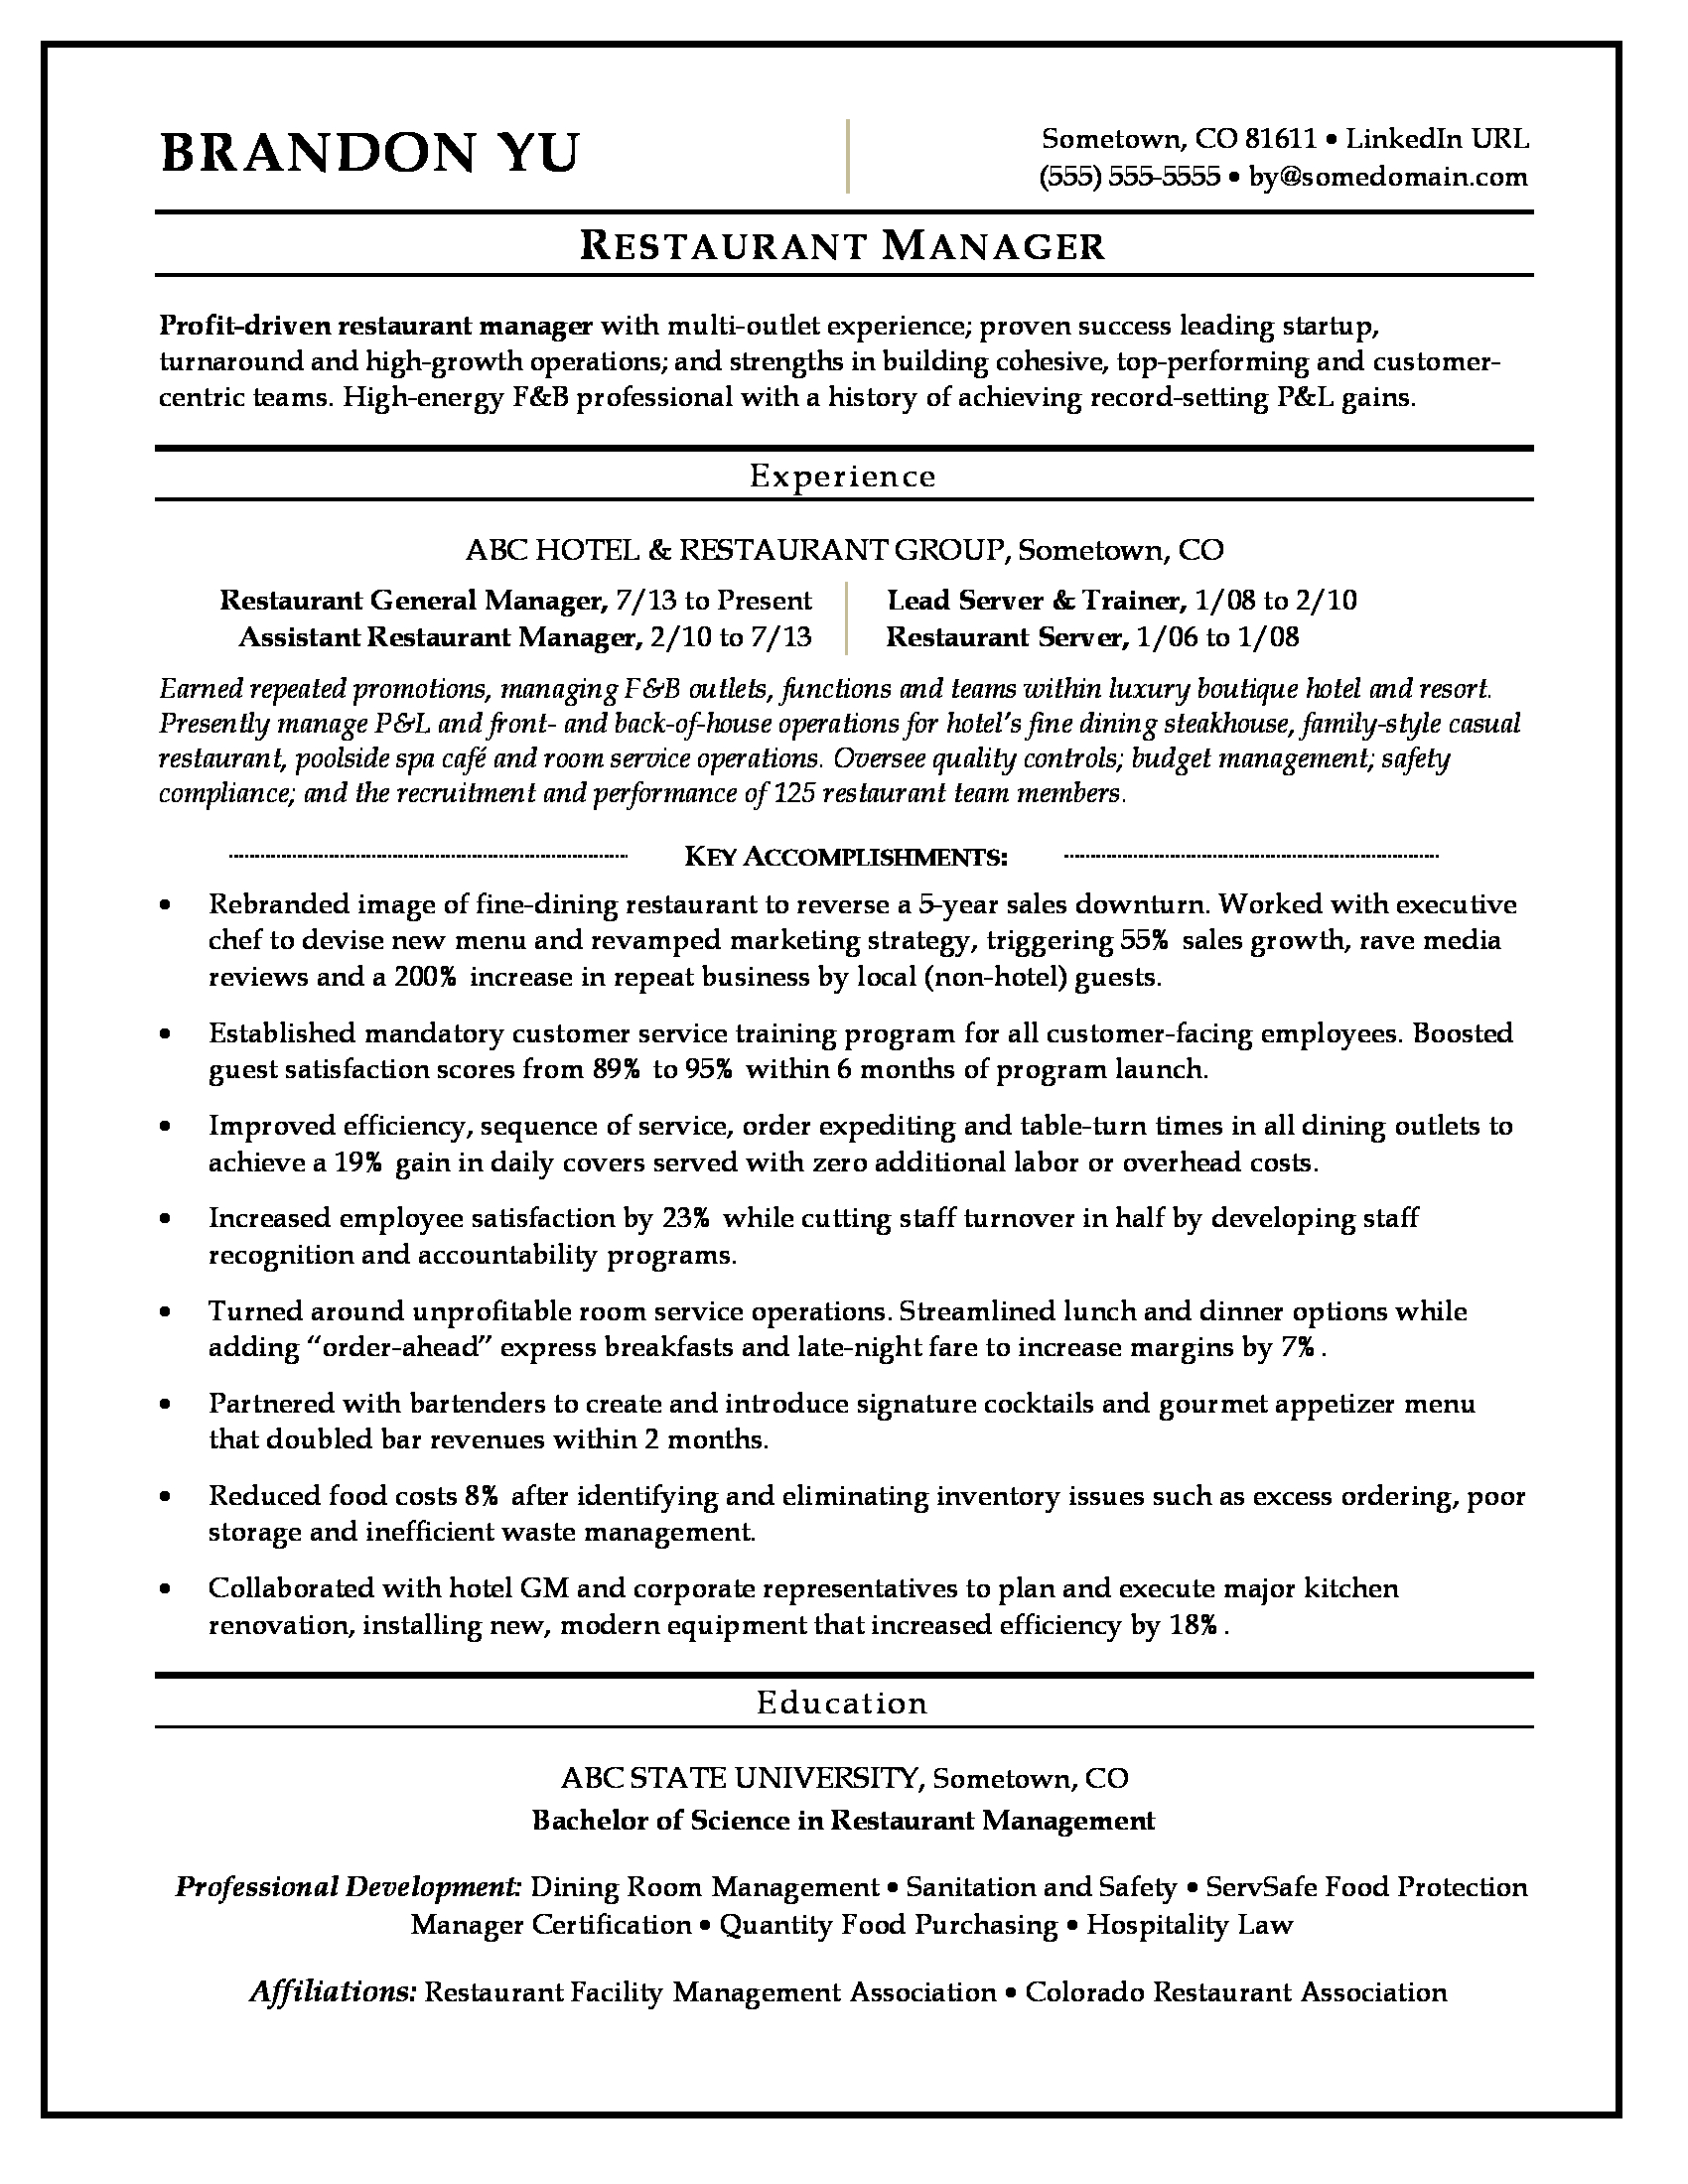 Restaurant Manager Resume Sample Monster Com